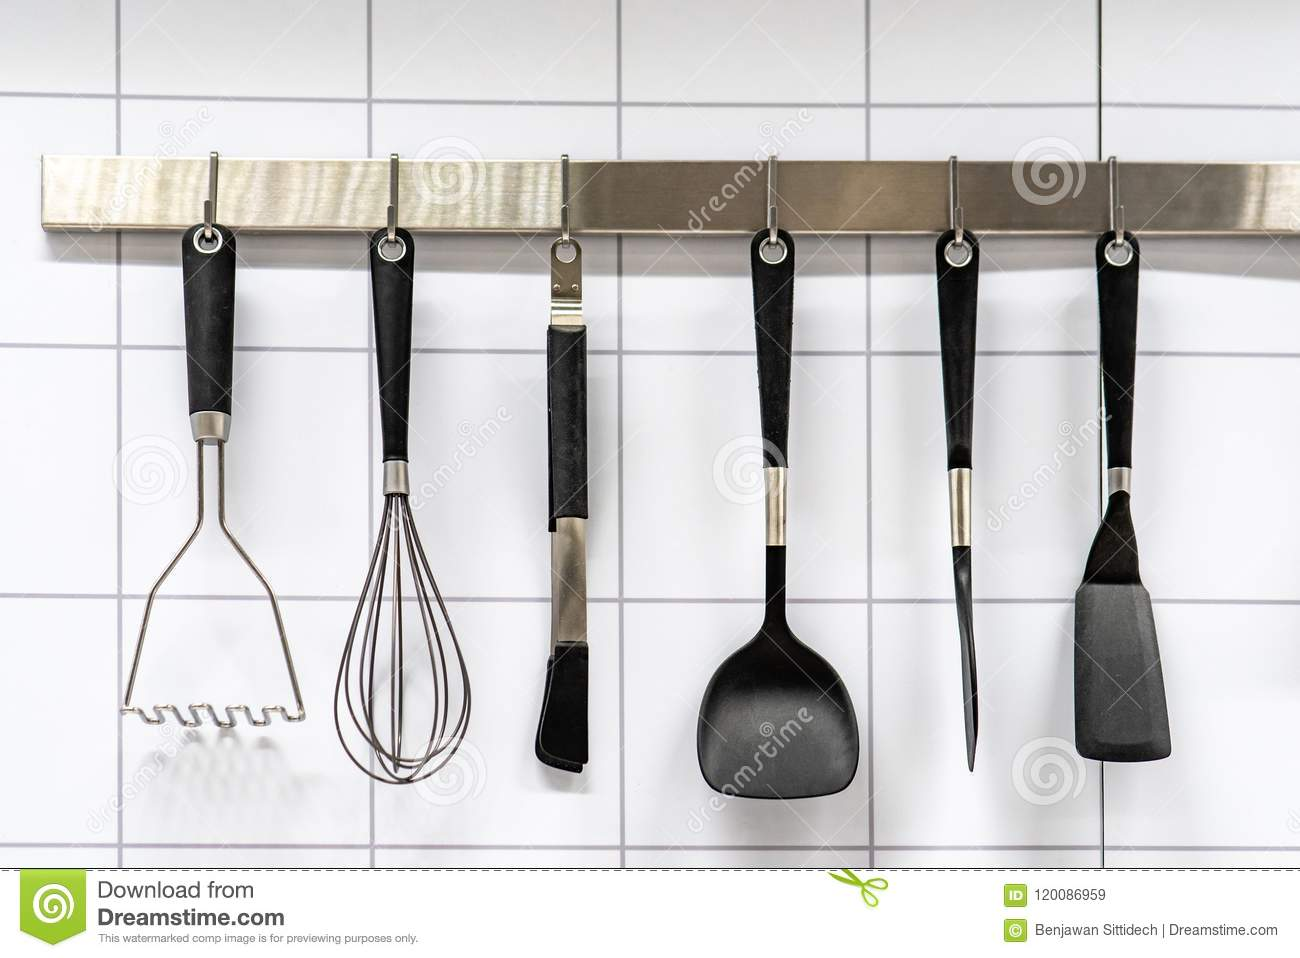 Set of black cooking utensils hanging on stainless bar on white modern ceramic wall tiles in the kitchen kitchenware or cookware concept